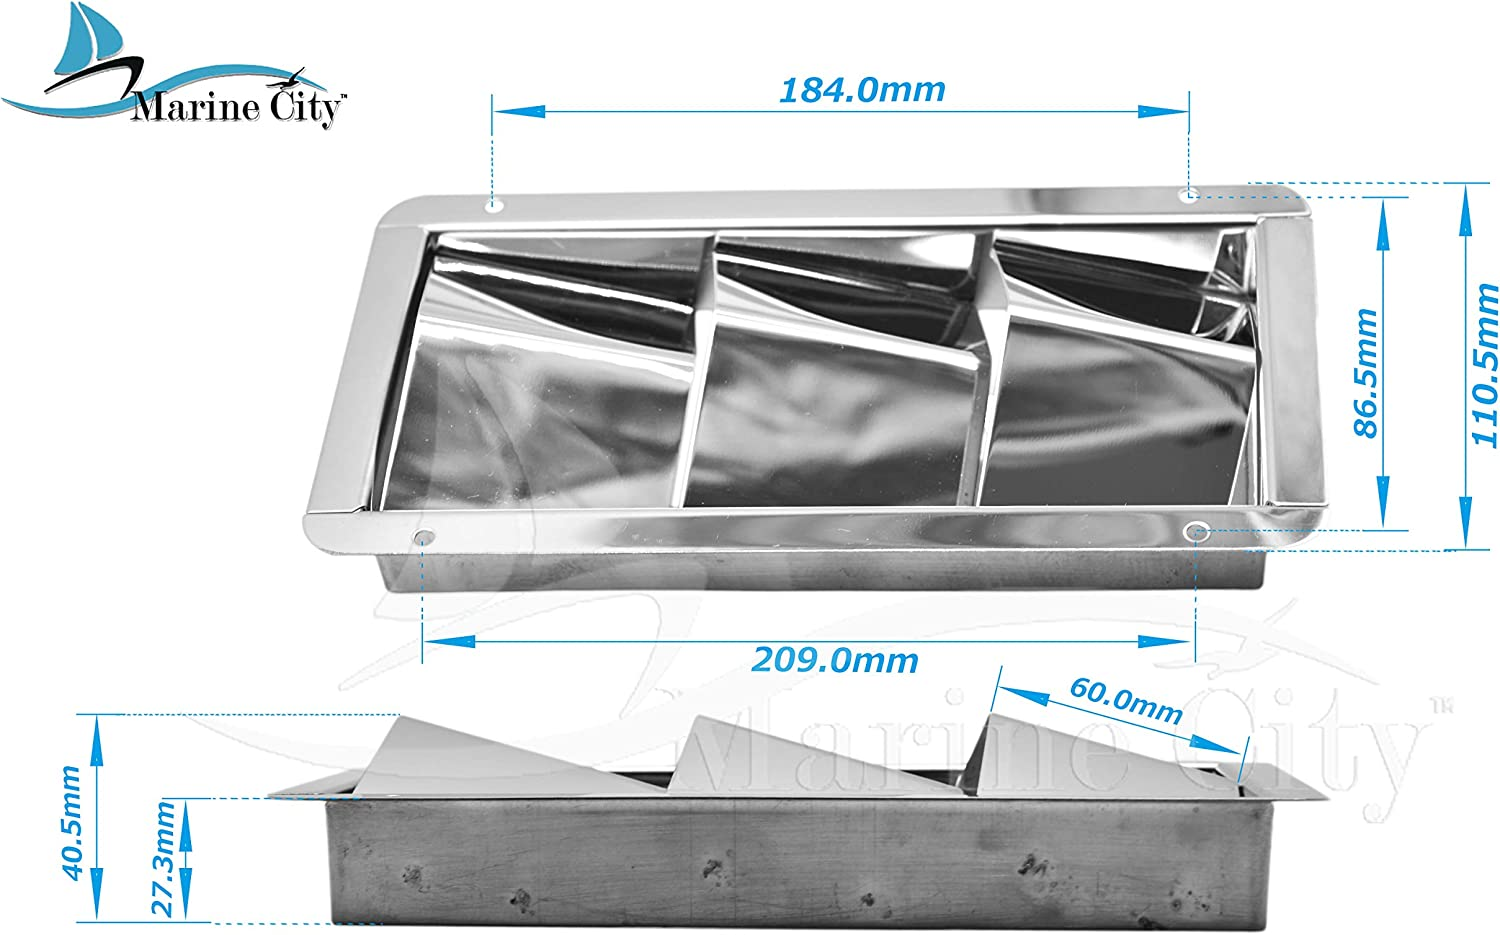 MARINE CITY Stainless Steel 3 Slots 8-1/4 Inches × 4-3/8 Inches × 4-3/8 Inches Louvered Vent for Boat